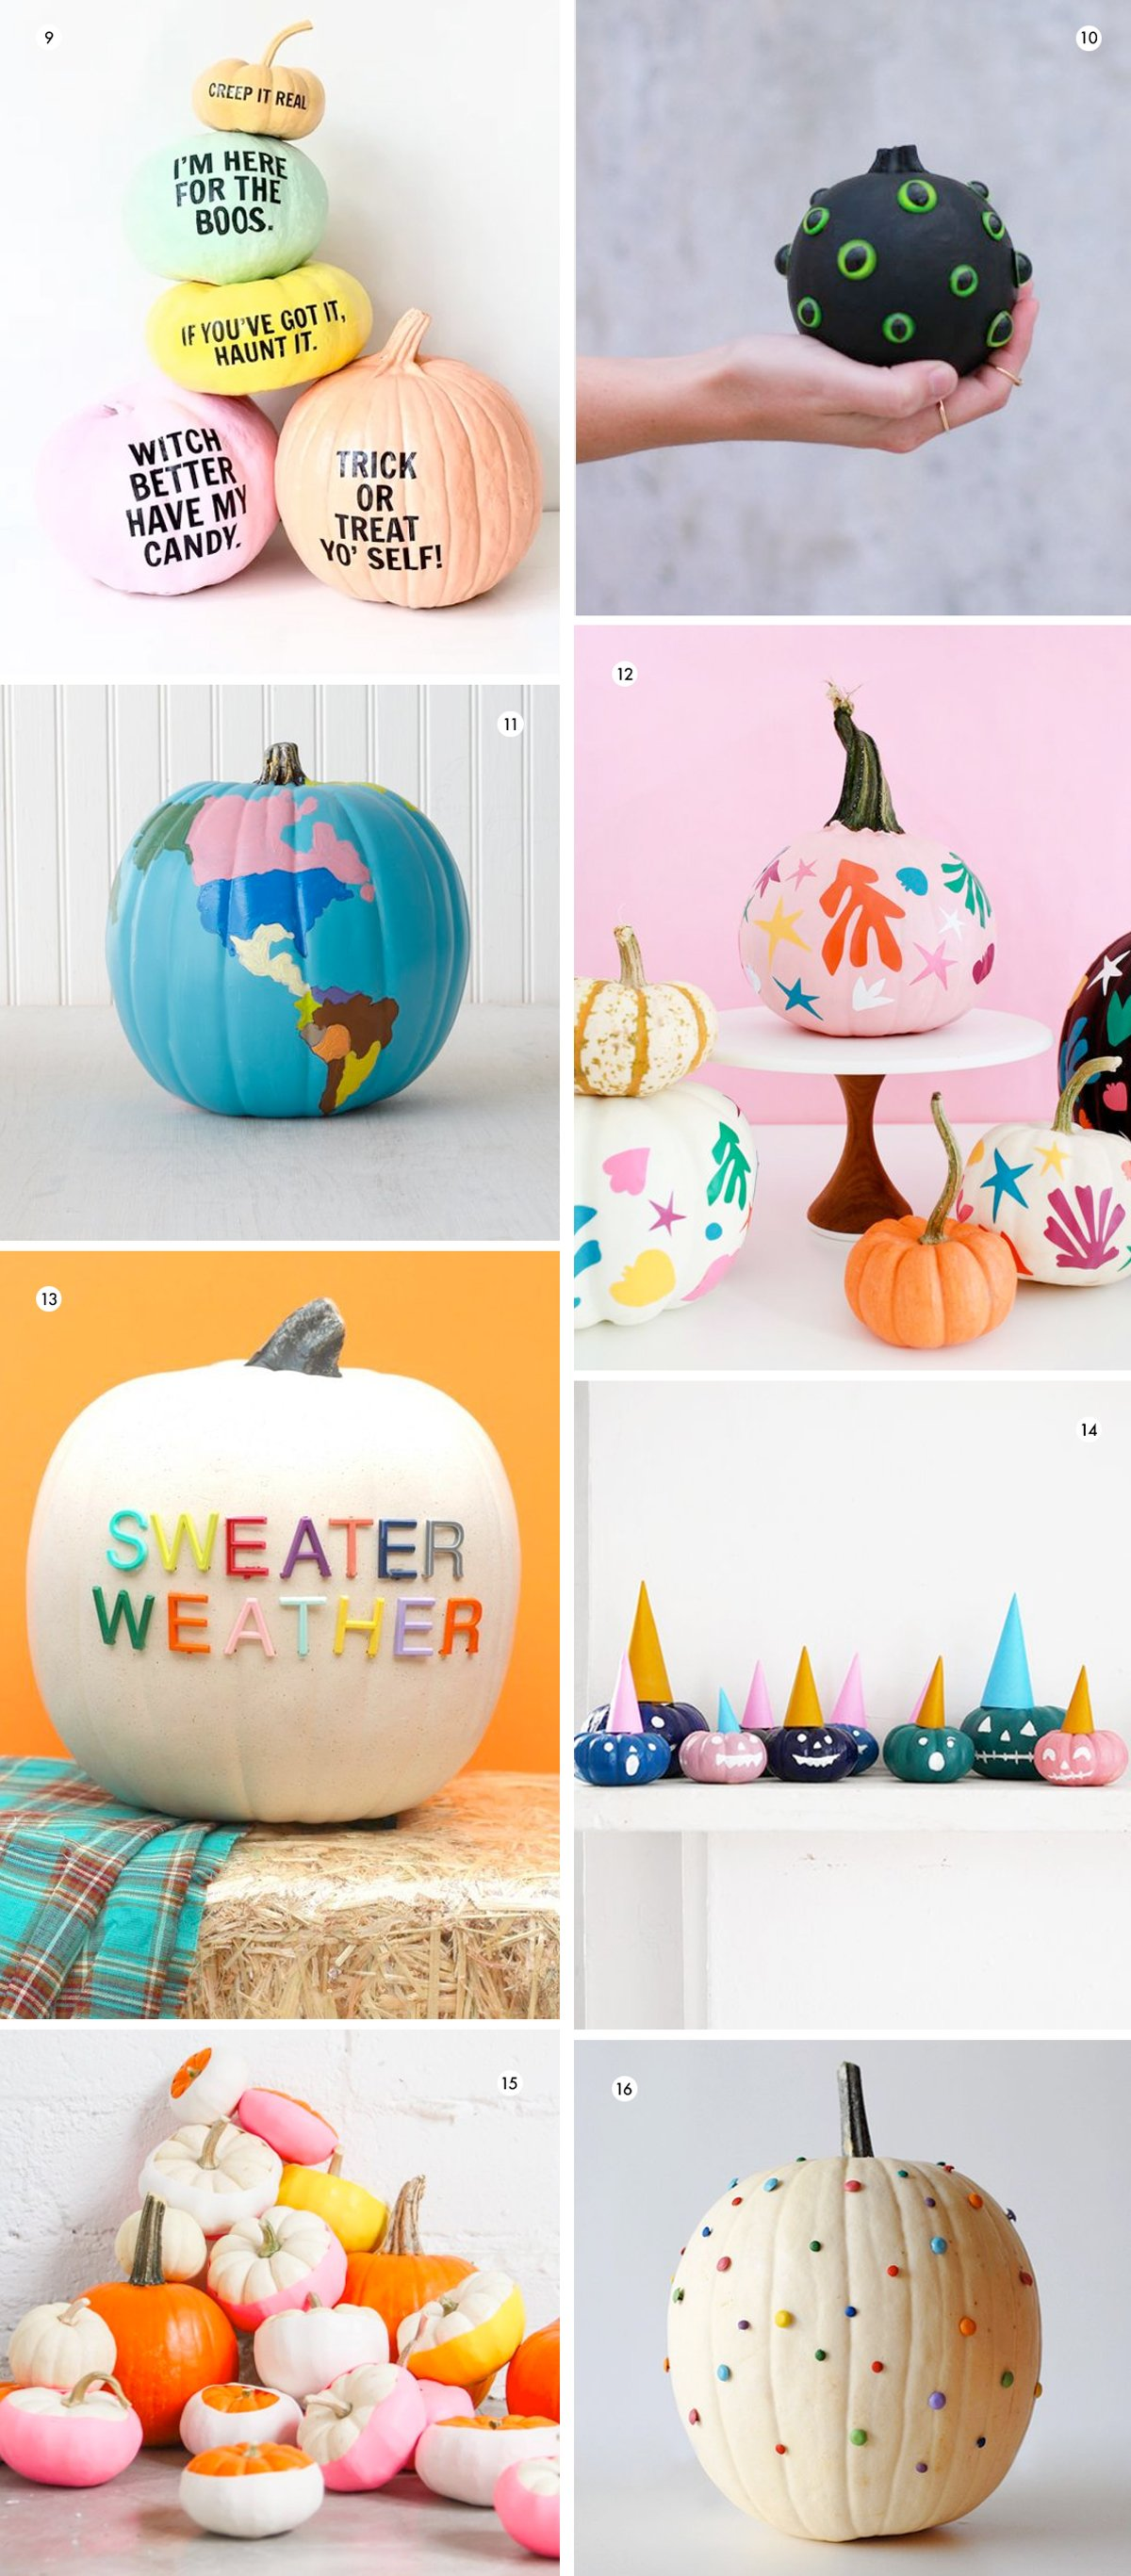 Image of colorful DIY ideas for pumpkin decorating without carving anything